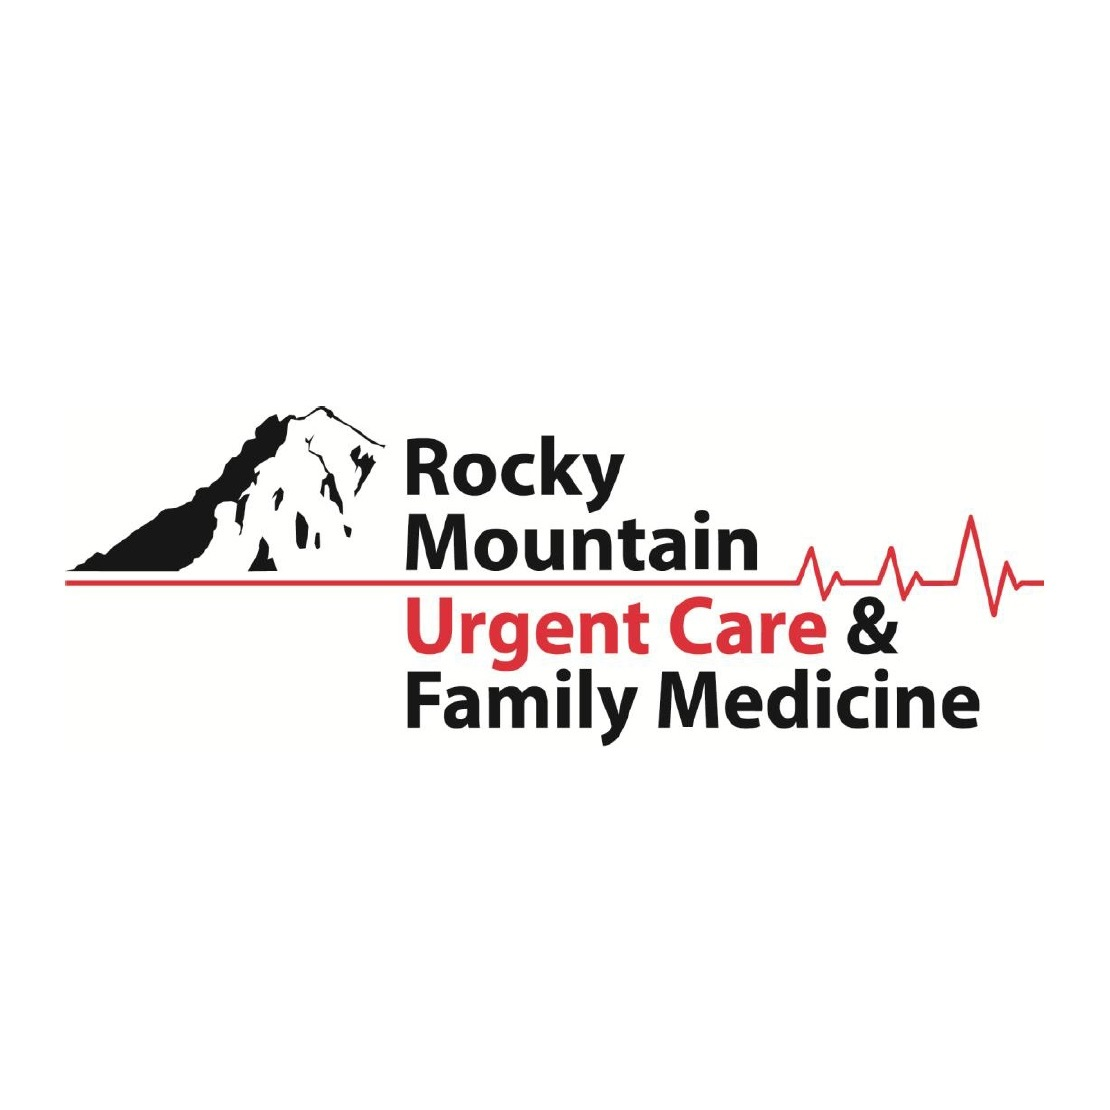 Rocky Mountain Urgent Care & Family Medicine